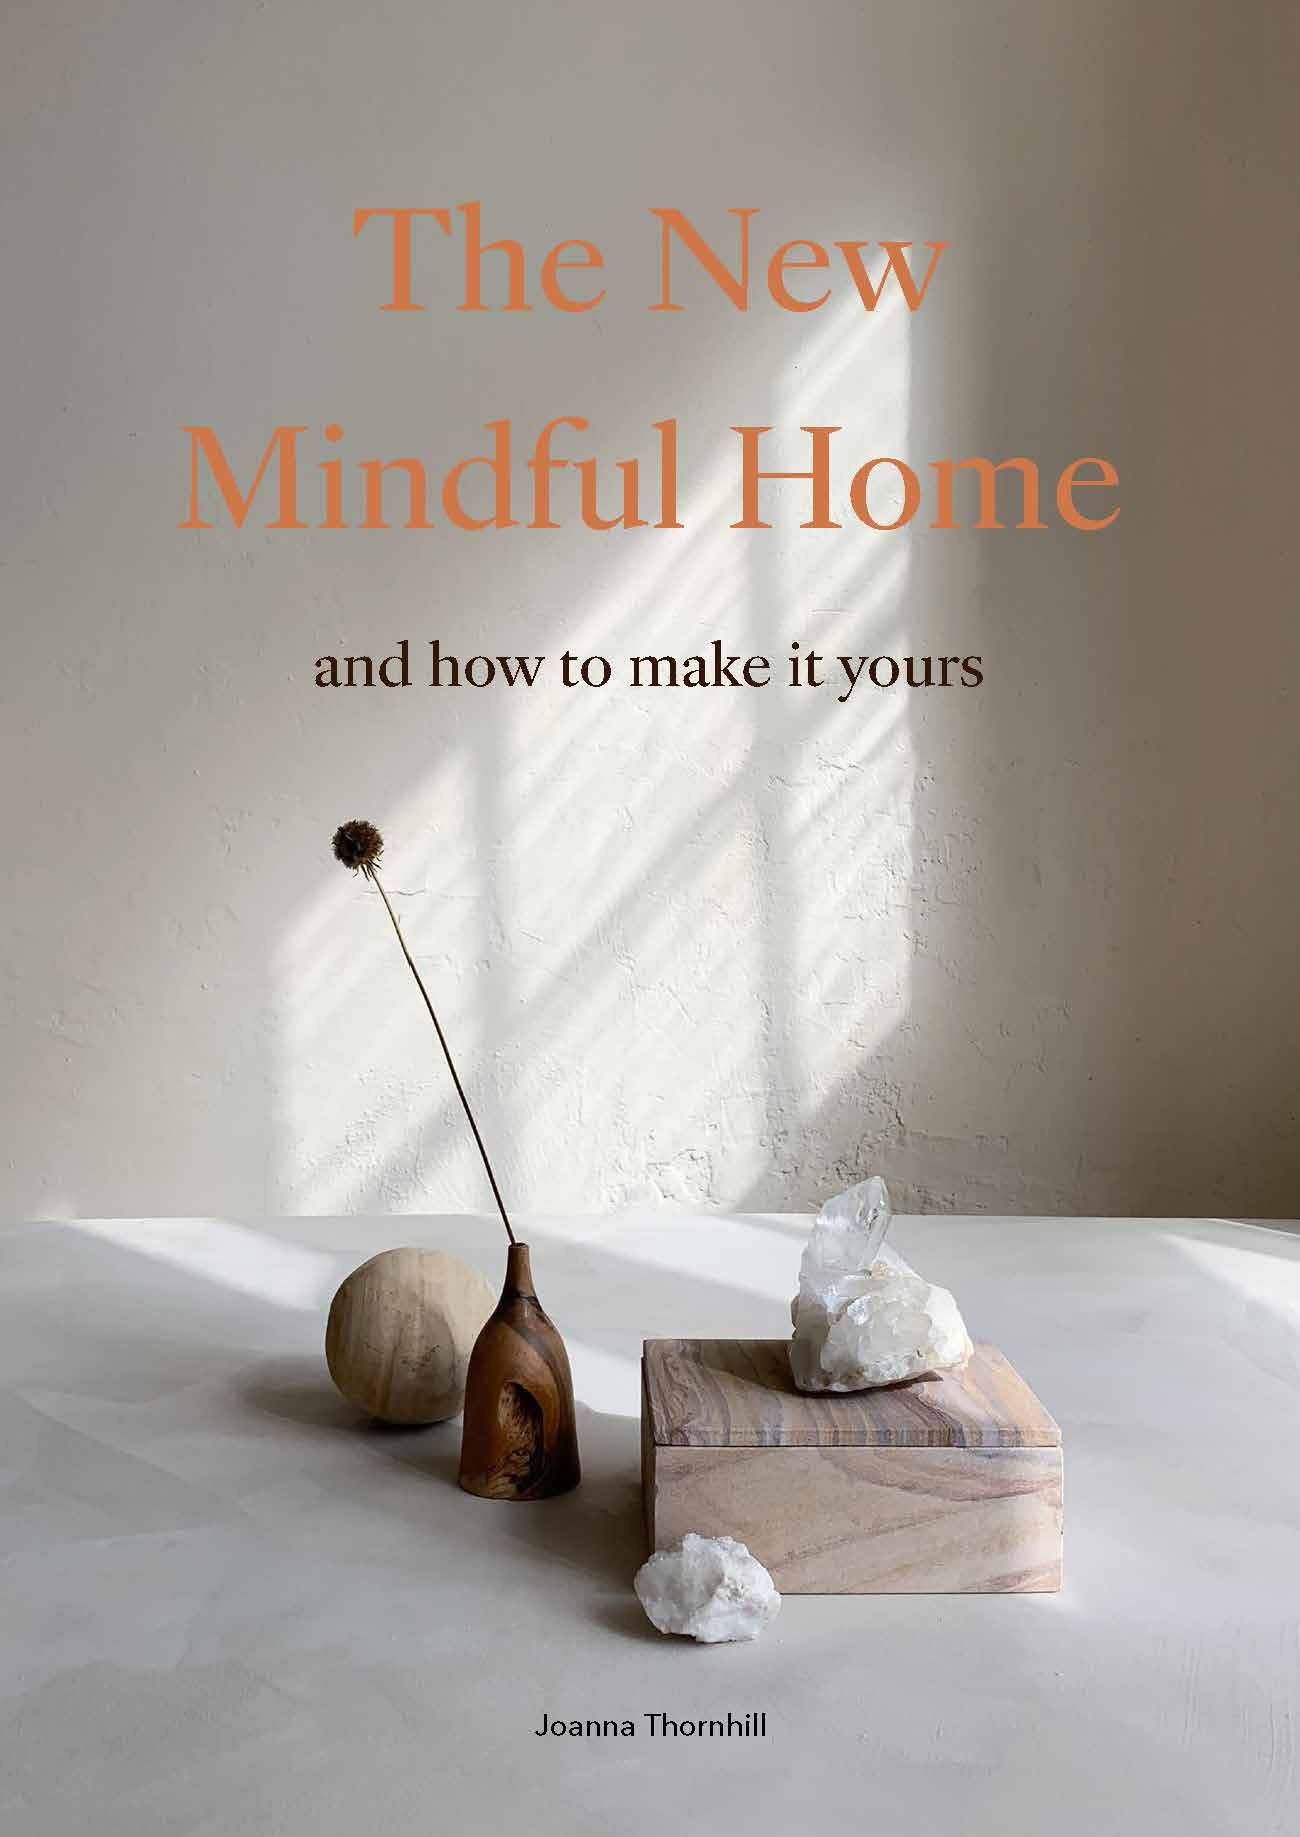 Make your home more mindful and discover a more considered way to decorate with this beautifully presented guide by acclaimed interior stylist, Joanna Thornhill. We often think of mindfulness in relation to meditation, but our homes and interior design can play a big part in our emotional well-being. The New Mindful Home demystifies the links between body, mind and soul to explain how you can harness the power of mindfulness to help our homes support a more considered lifestyle. How do we create spaces that can calm and revives us? With the same practical attention to problem-solving as in her first book, My Bedroom is an Office, author Joanna Thornhill helps you create an environment you will always want to come home to. The New Mindful Home explores how you can use interiors to aid living with intention, slow living, creating supportive room layouts, considering mindful effects of colour, and embracing plants and natural elements in our homes. Enhanced by beautiful contemporary photography, this book will provide interior design inspiration for a generation who want to consider how they can live more mindfully. 160 Illustrations, unspecified